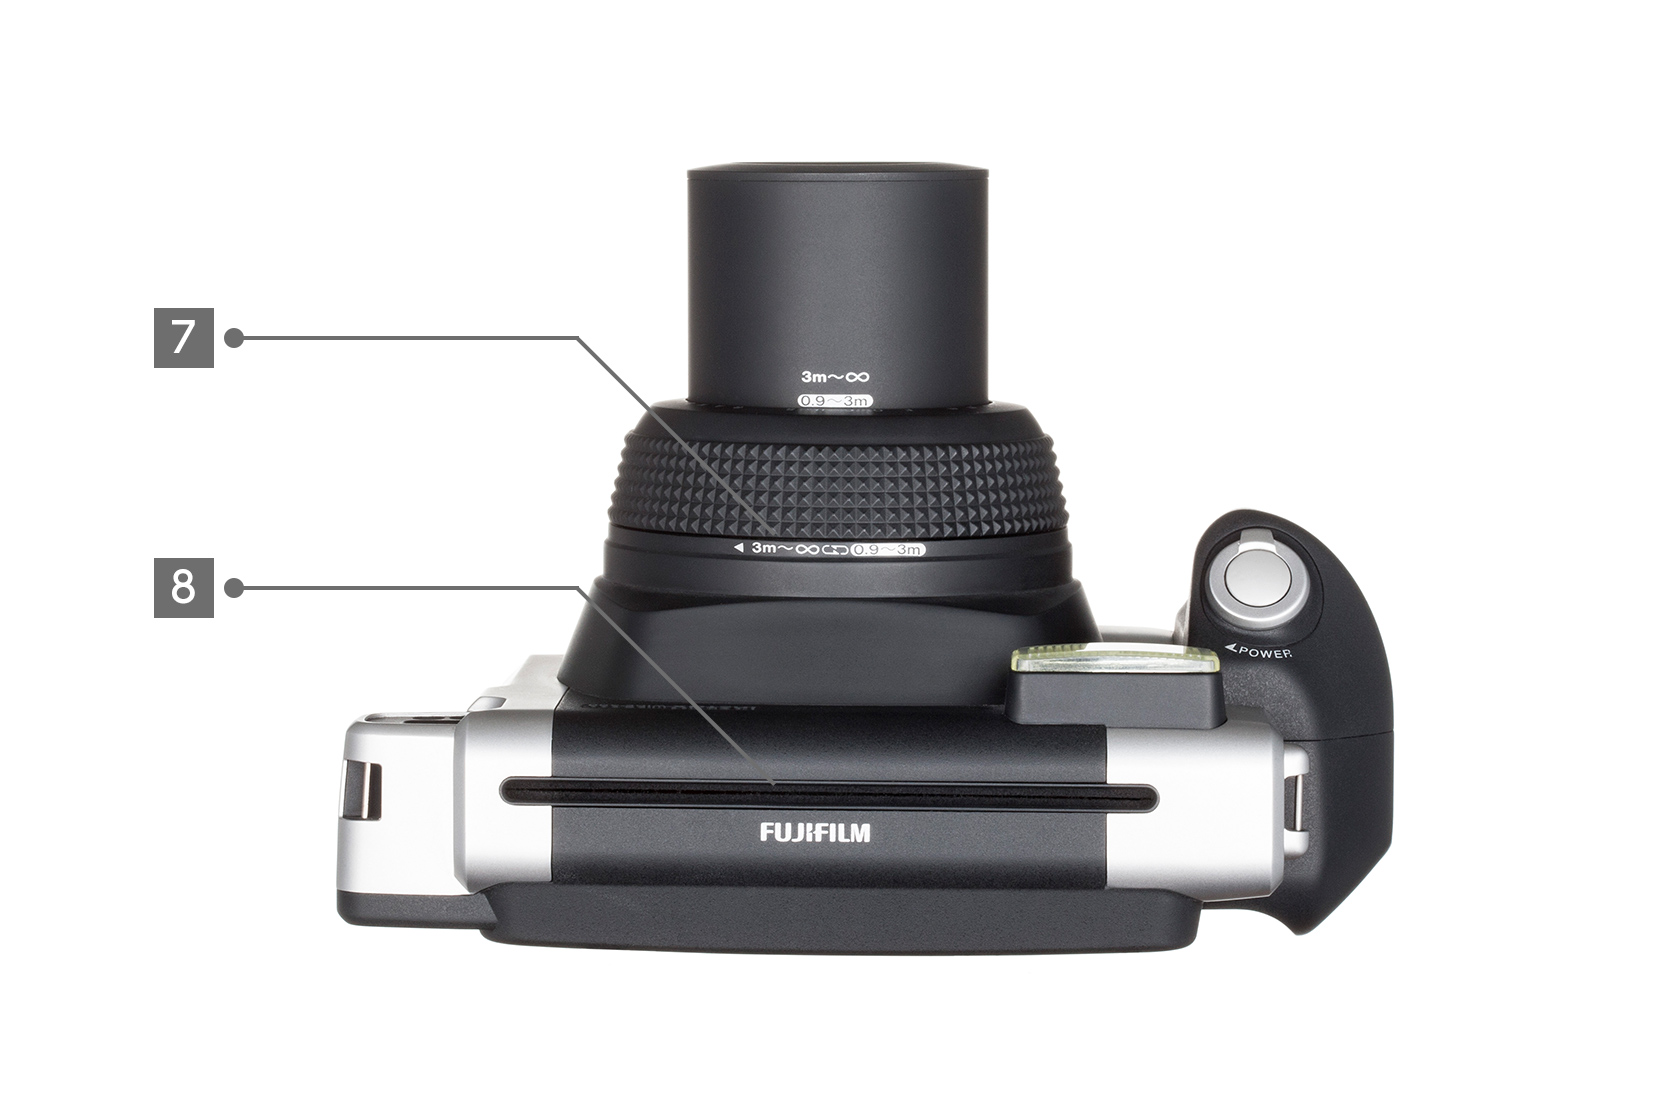 [photo] Top view of a Black Instax Wide 300 with different parts labeled 7 and 8